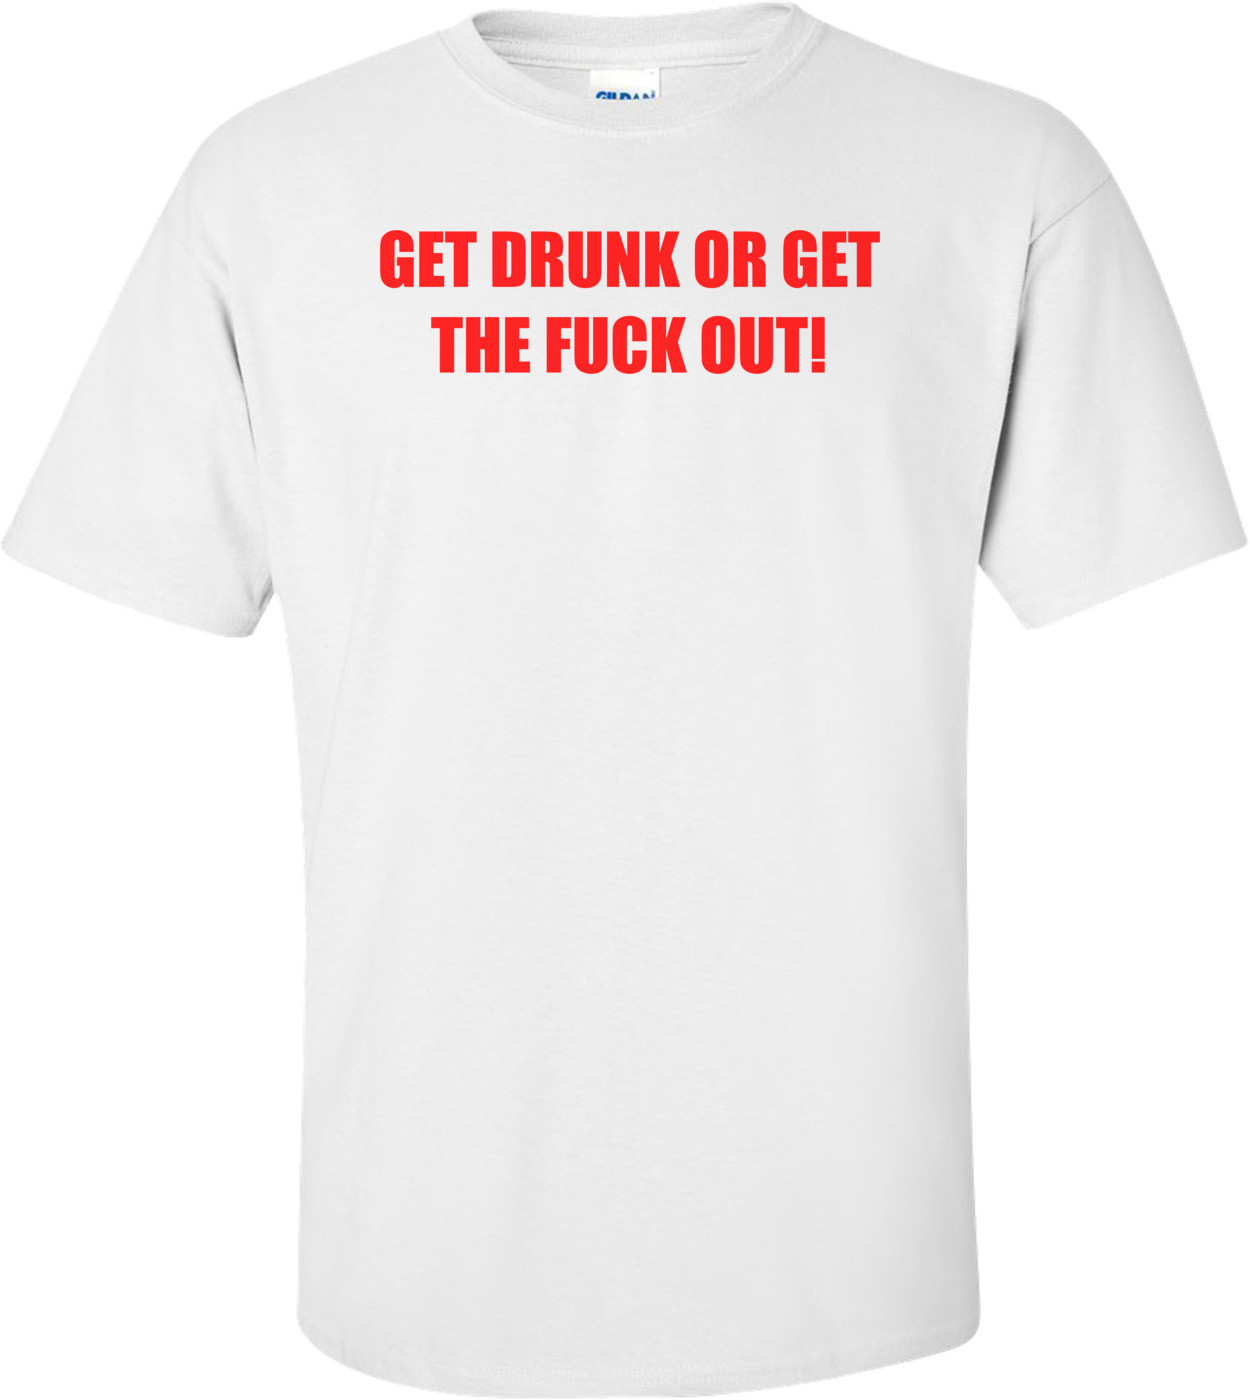 GET DRUNK OR GET THE FUCK OUT! Shirt